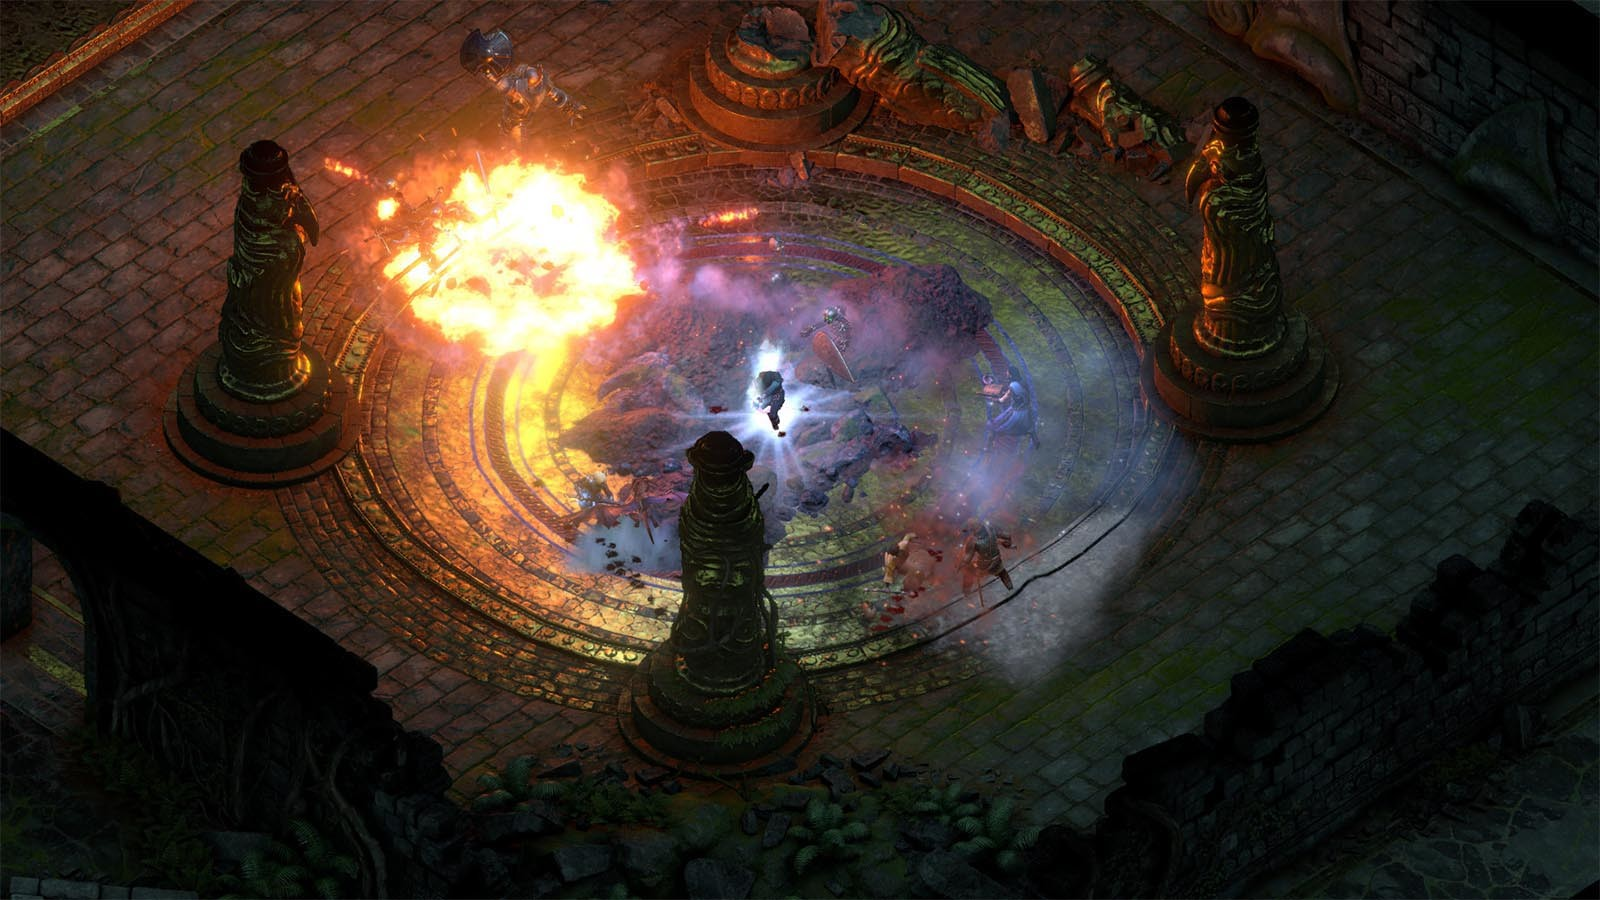 Pillars of Eternity II: Deadfire [Steam CD Key] for PC, Mac and Linux - Buy  now